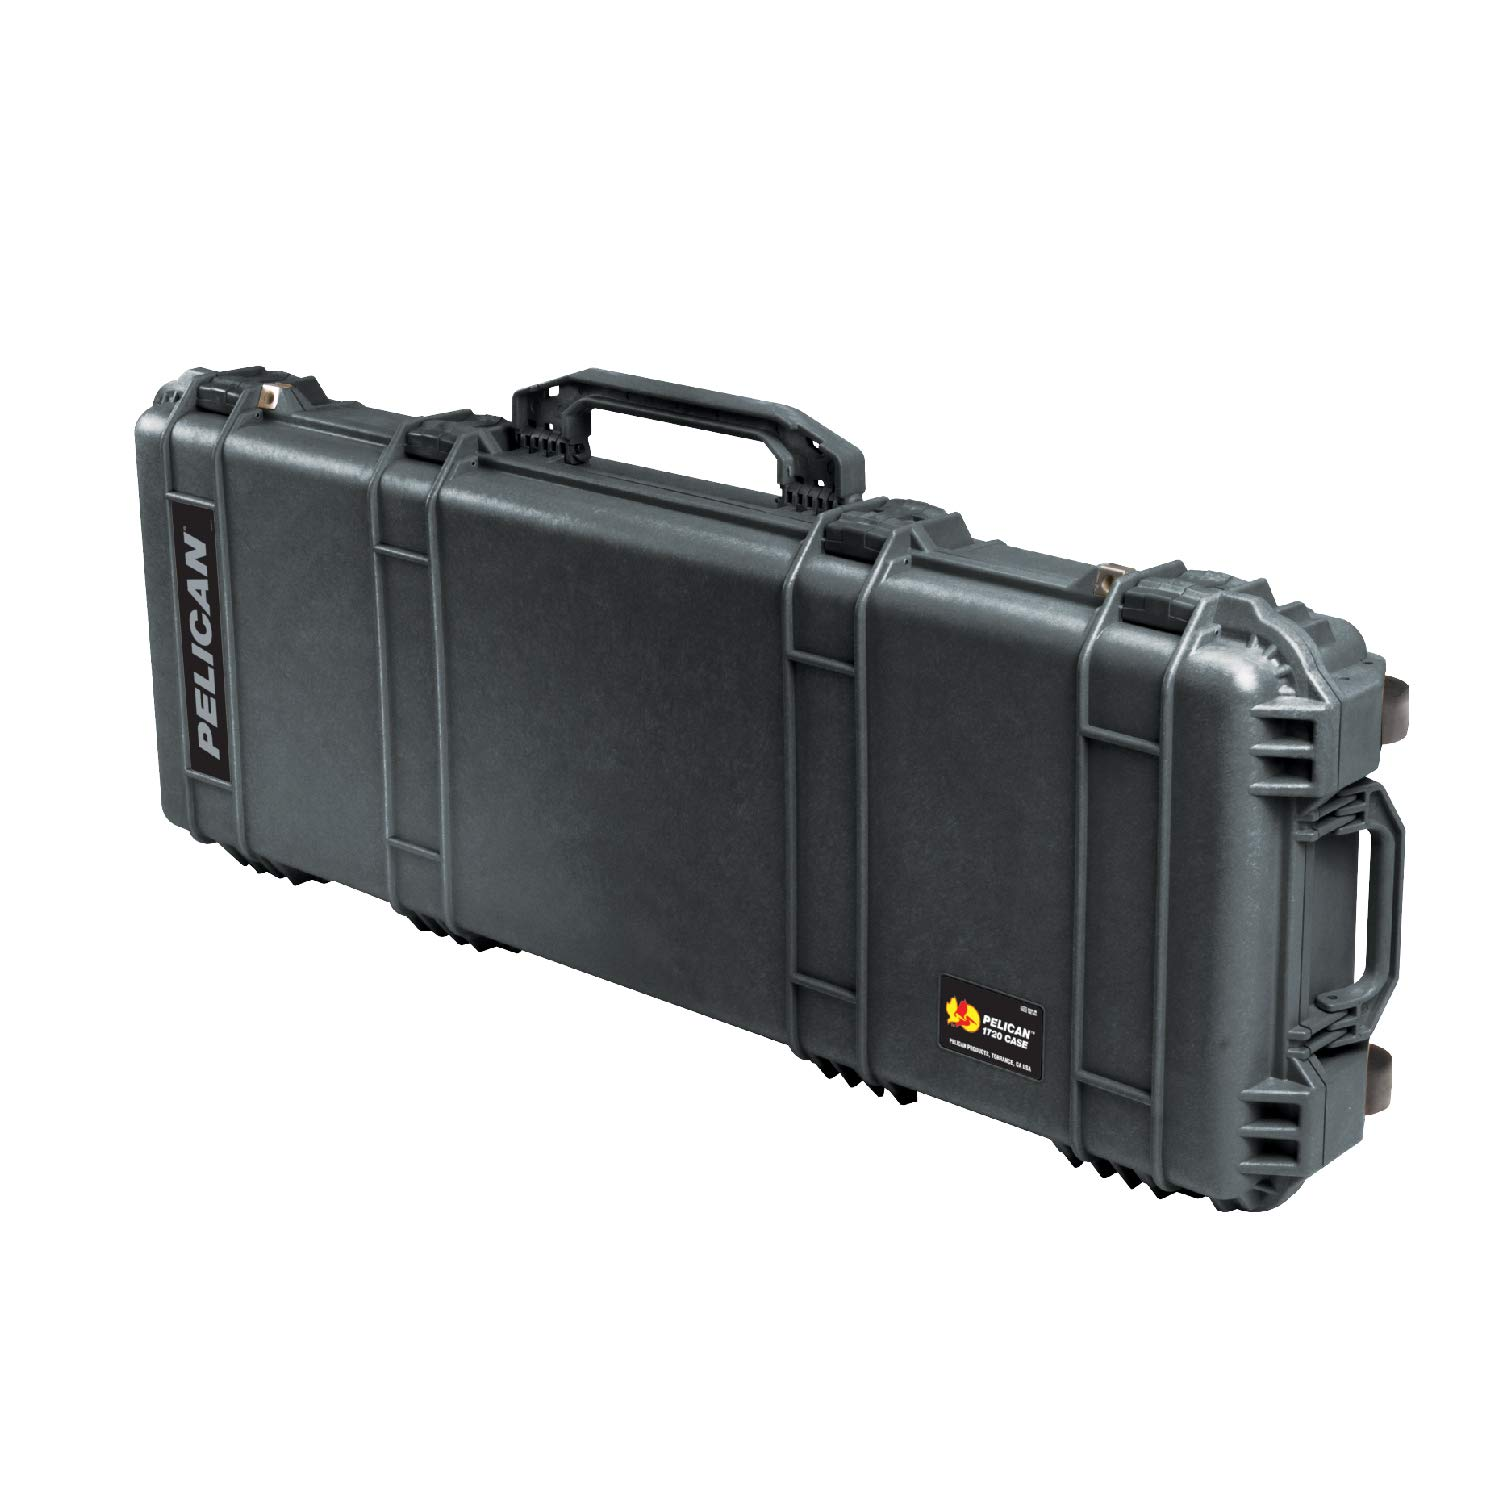 Pelican 1720 Rifle Case With Foam (Black) by Pelican